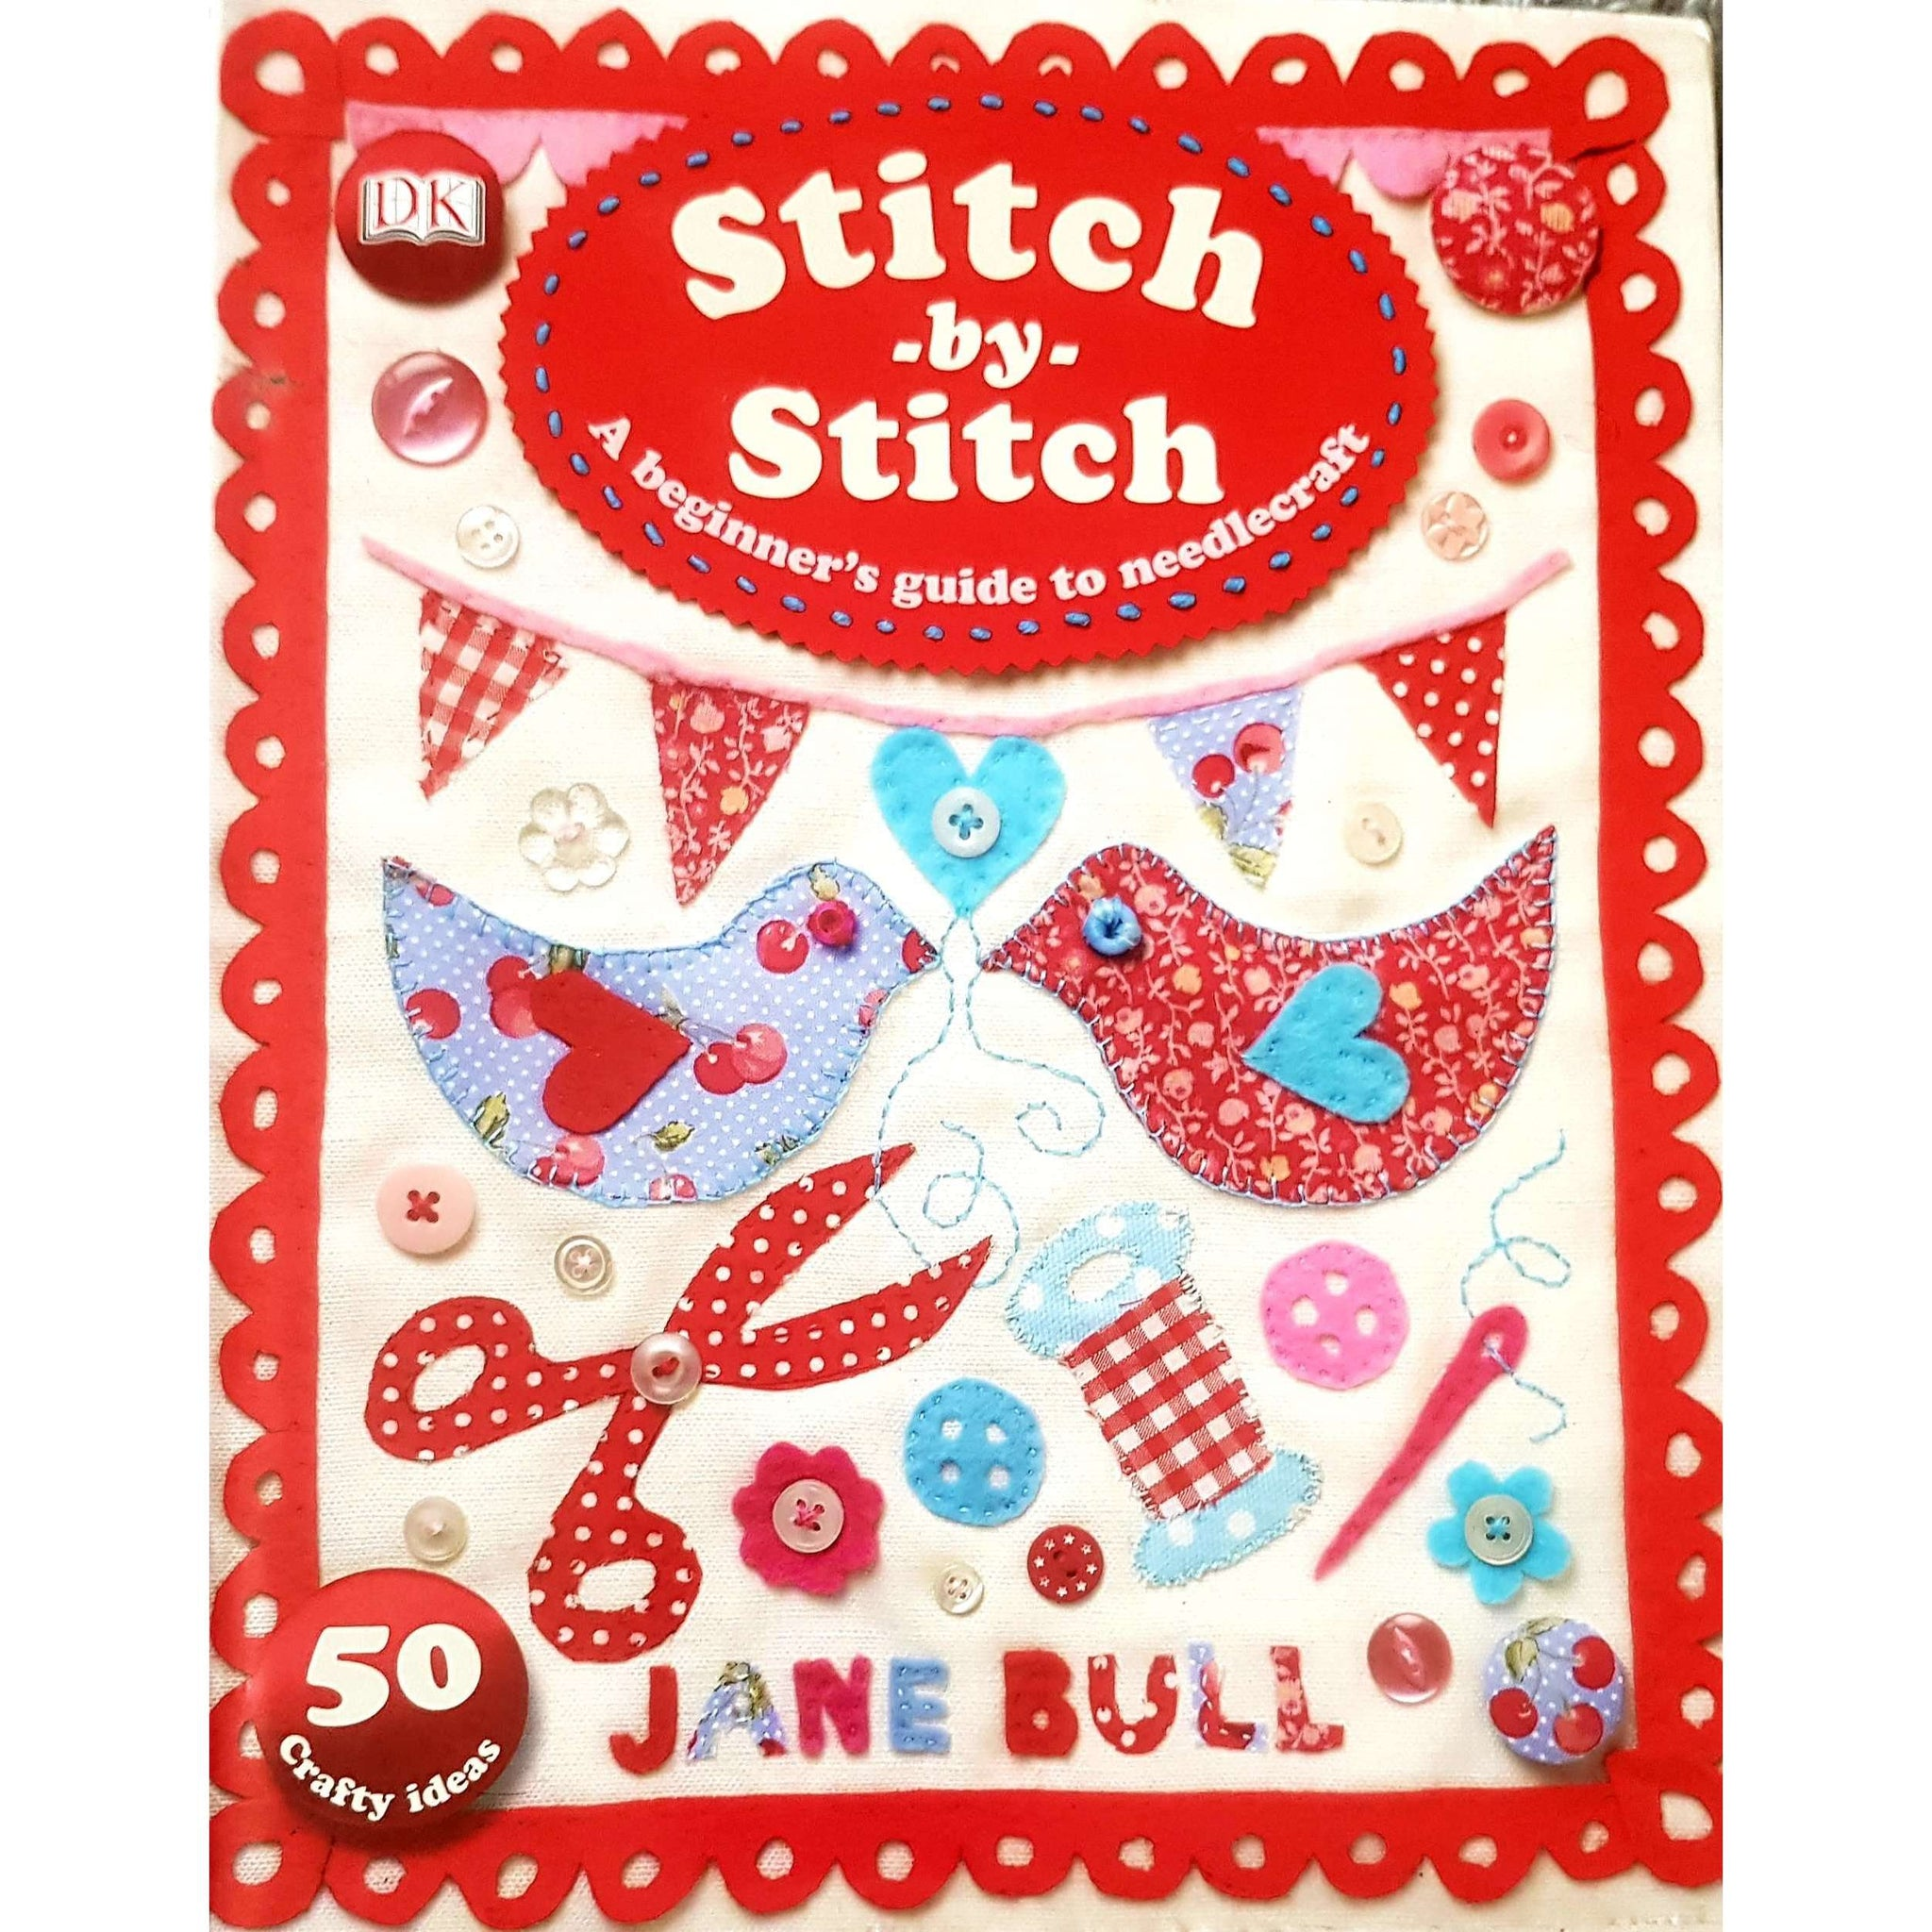 Stitch By Stitch - Jane Bull (Preloved)